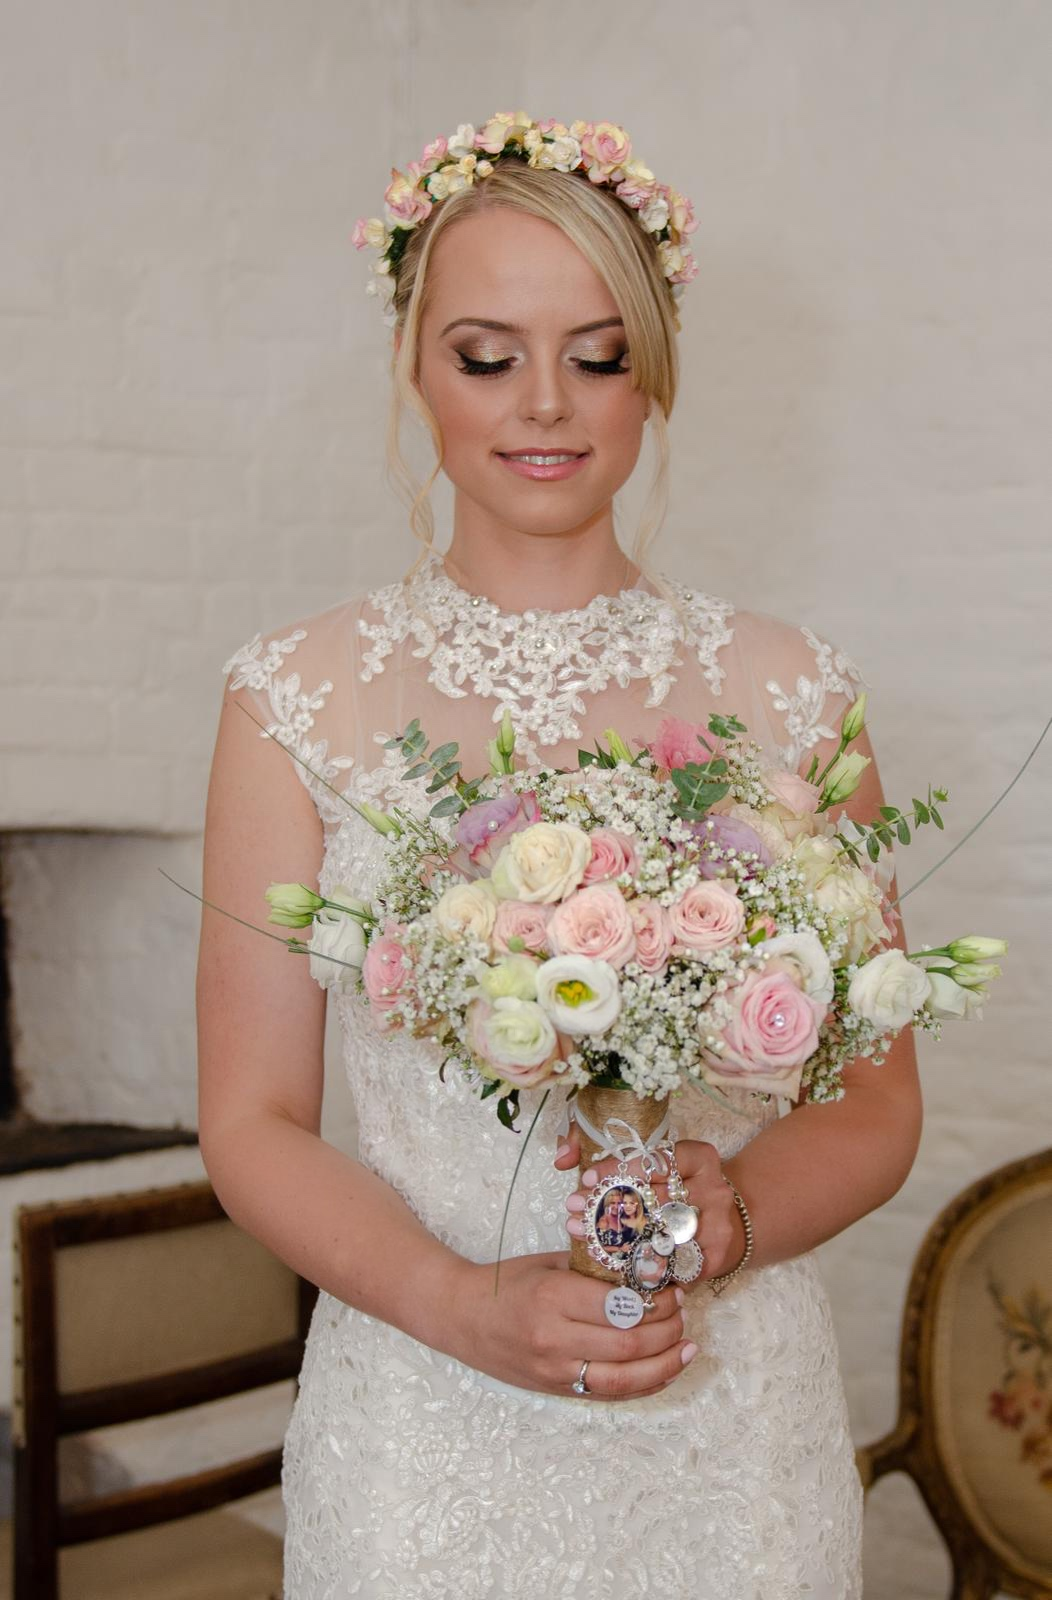 Bridal Makeup by Hannah's Makeup based in Hampshire